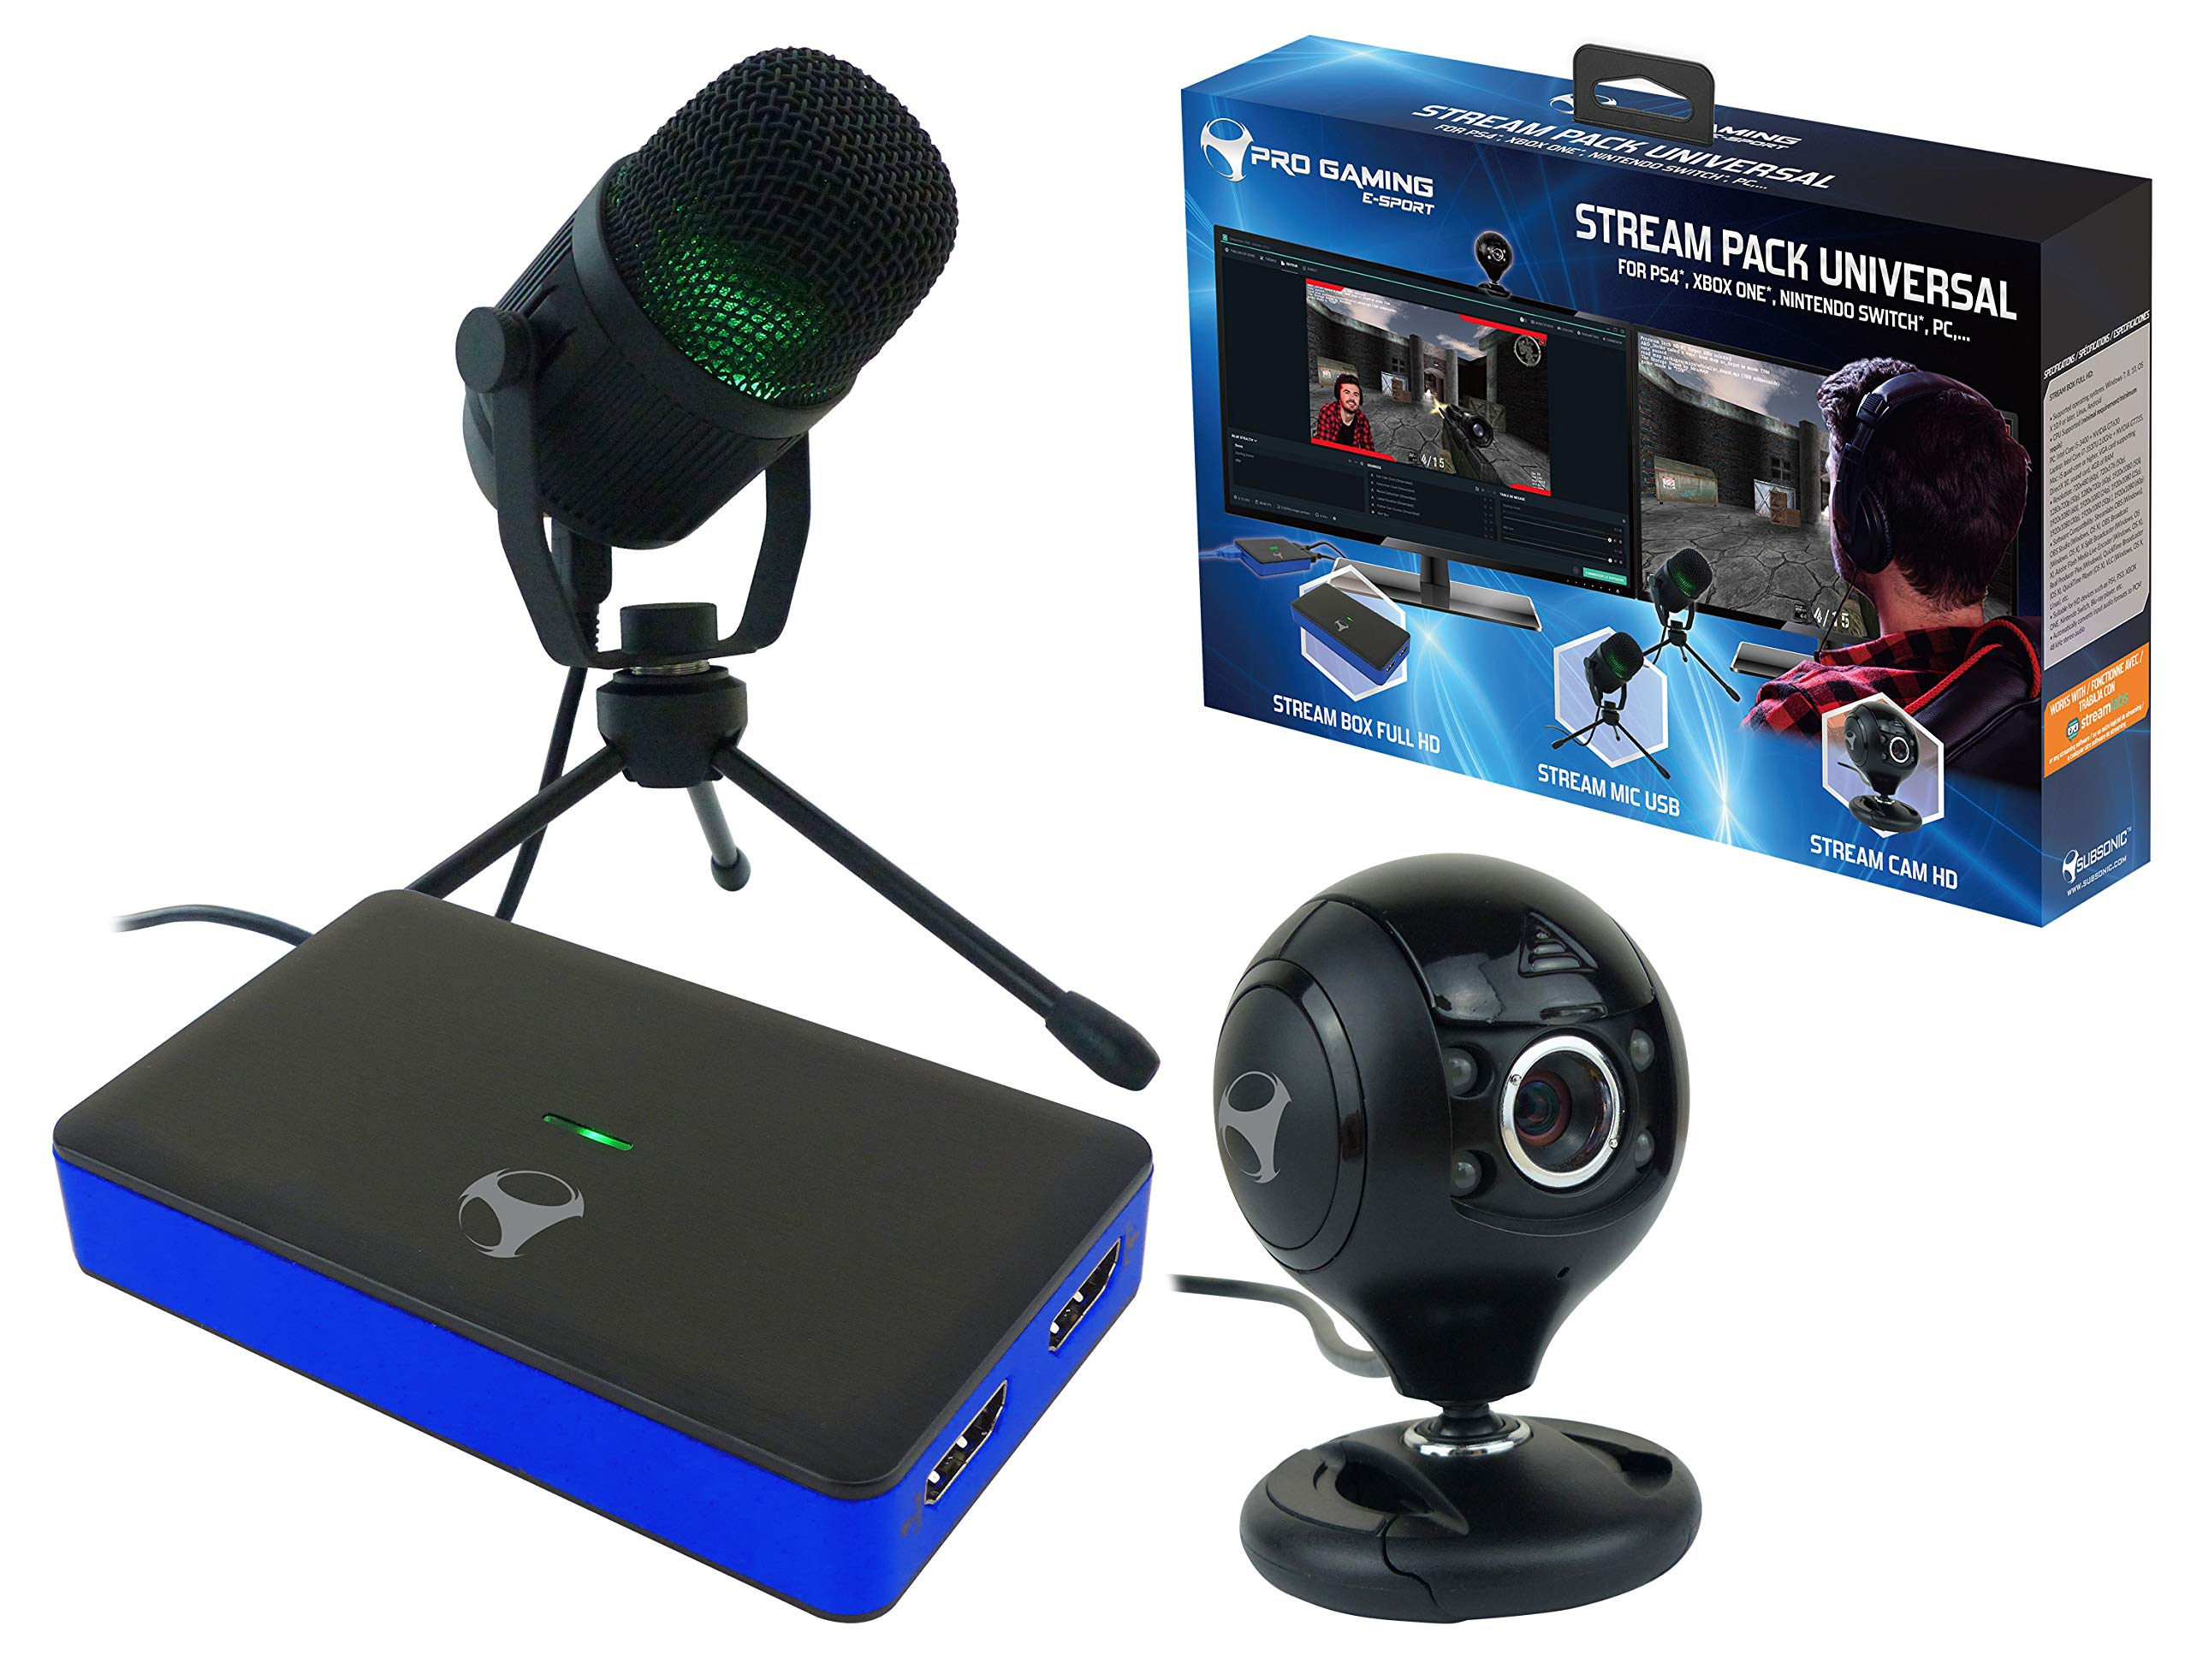 Subsonic – Stream Pack accessories for gamers and youtubers with Full HD video capture box, microphone and HD camera…